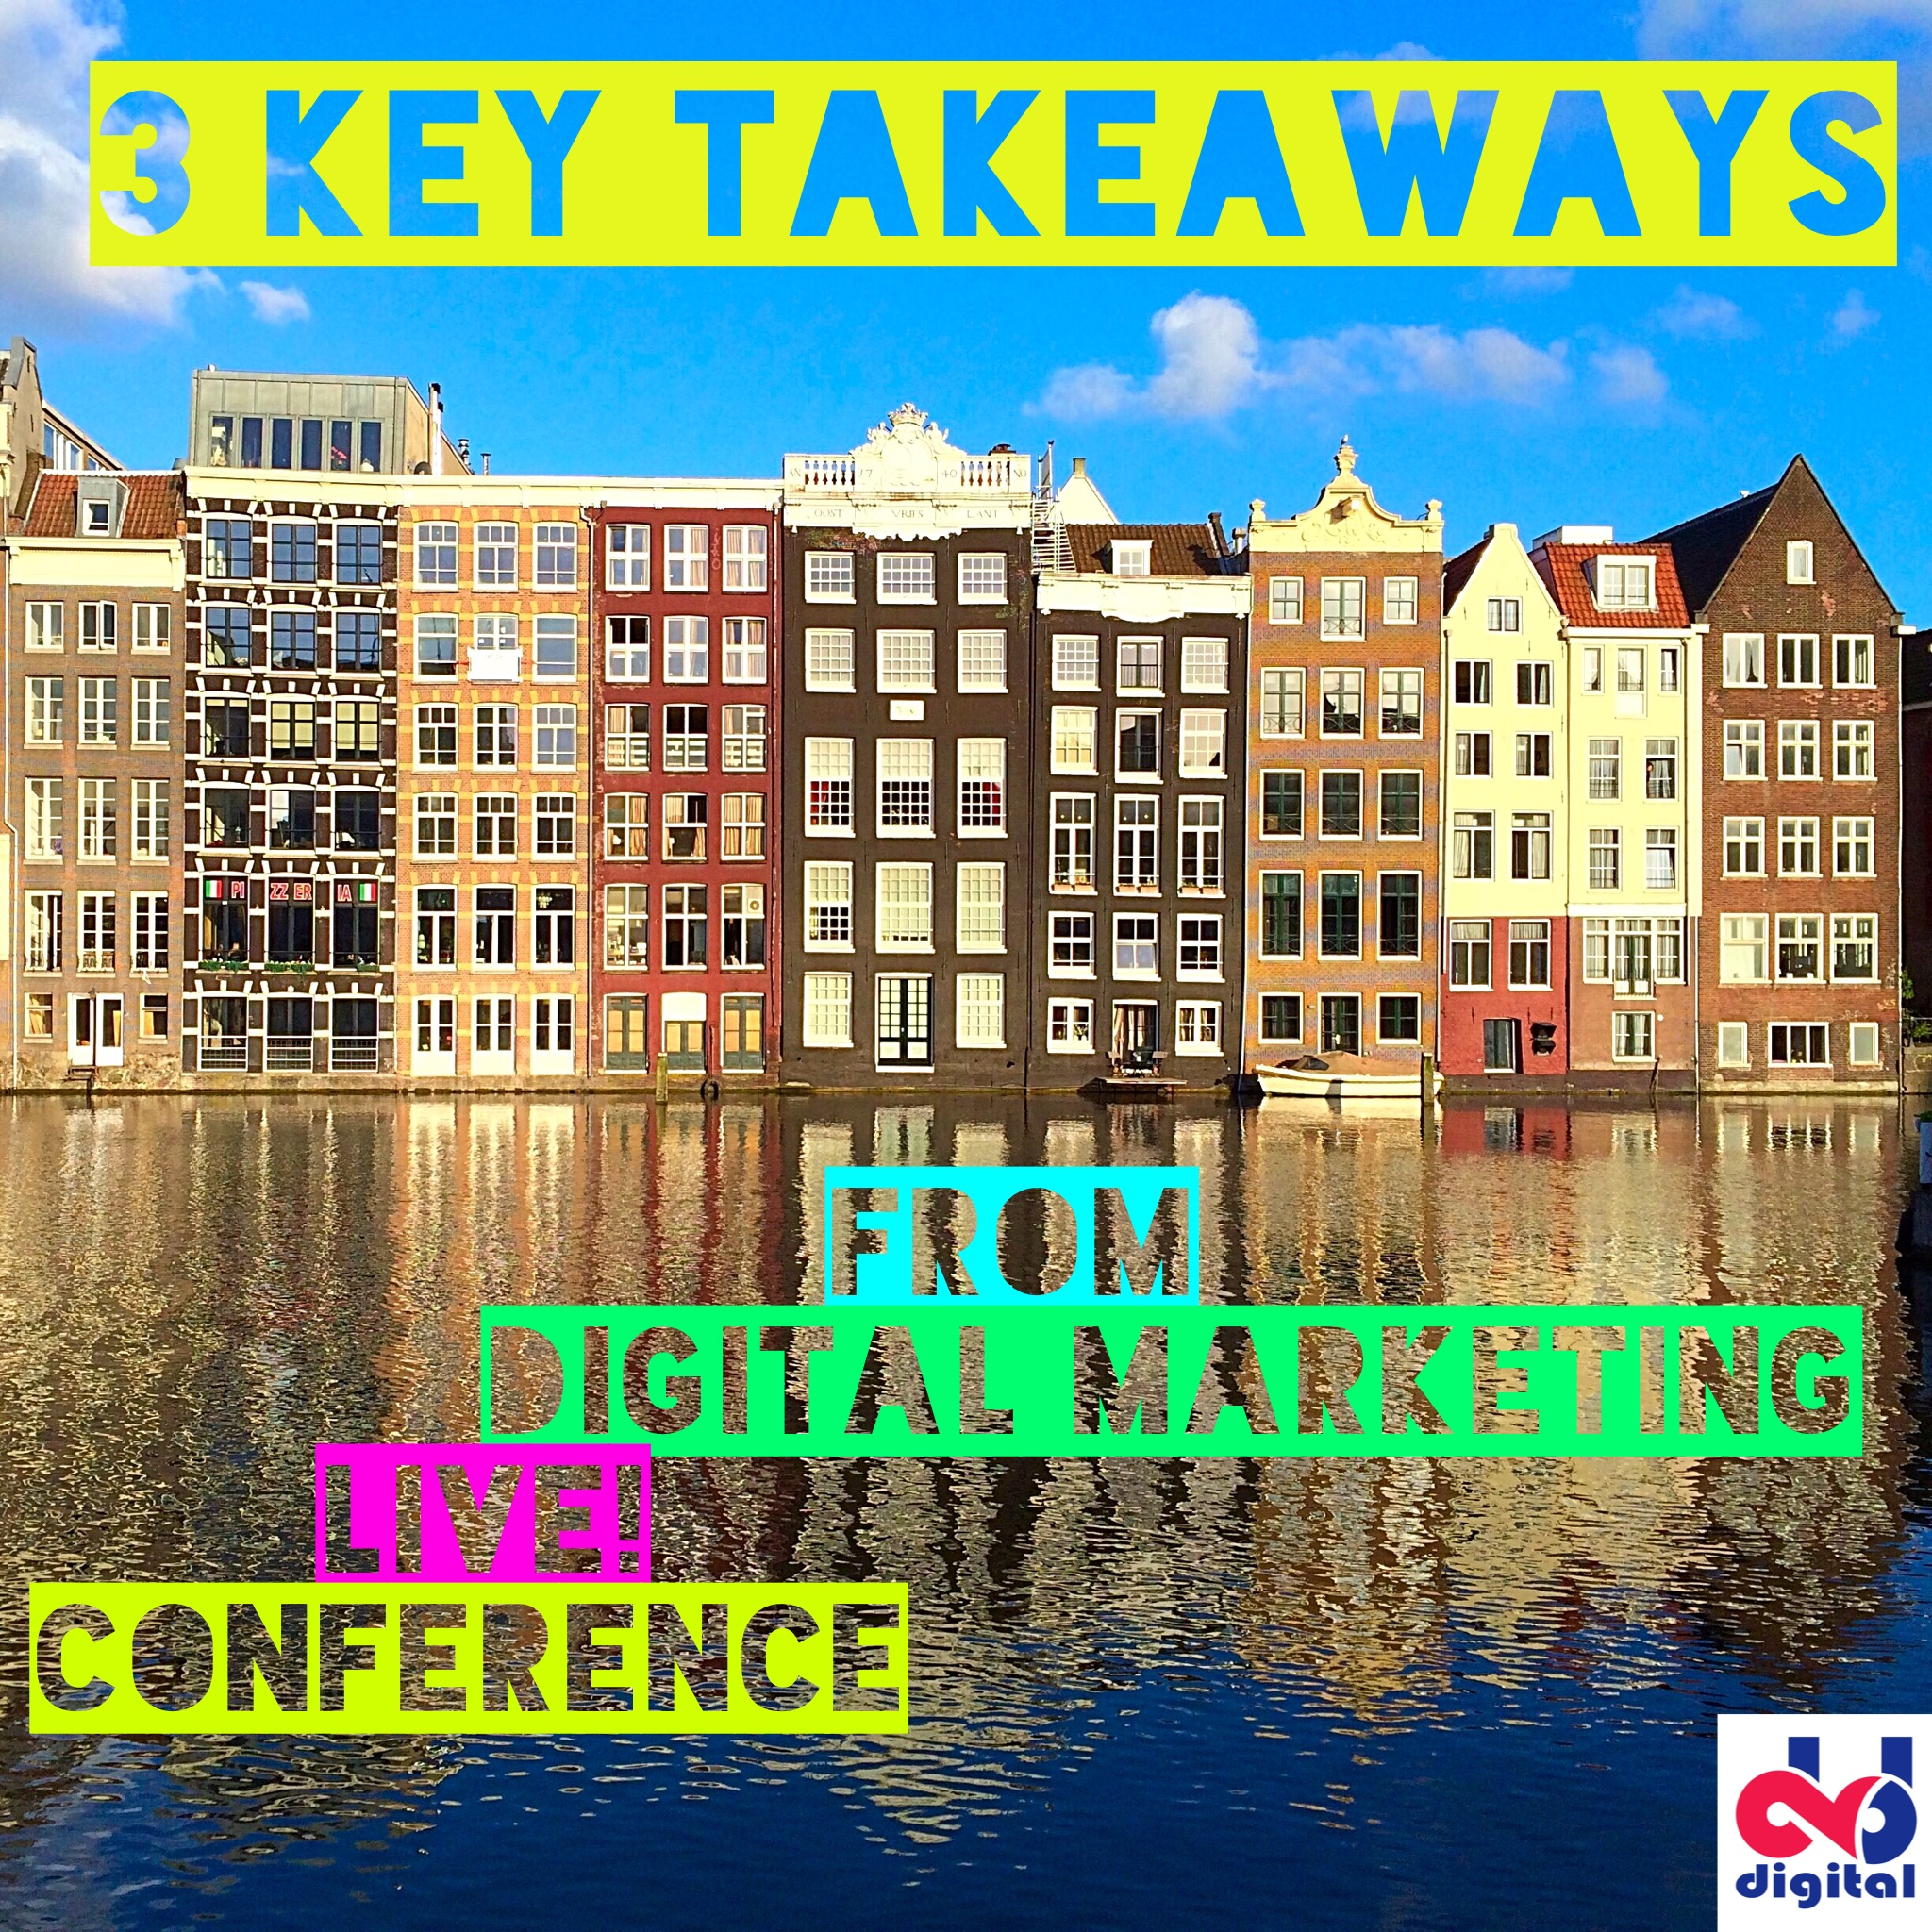 Key takeaways from Digital Marketing Live! conference